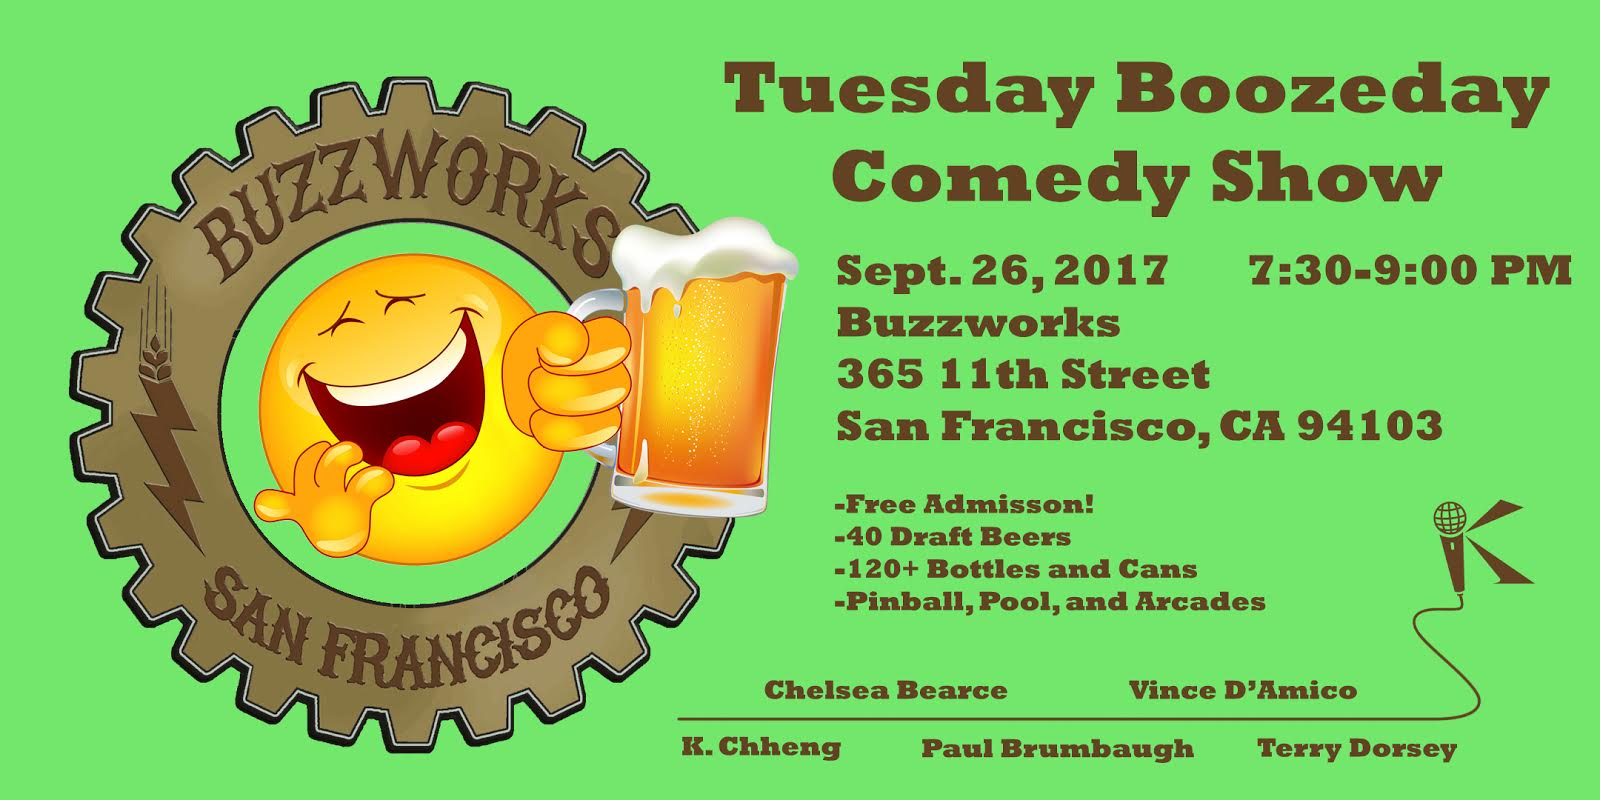 Enjoy some beers and bites at BuzzWorks while watching the Bay's best comics. BuzzWorks has 40 beers on tap and over 200 beverages to choose from, and the comics have plenty of jokes to keep you laughing till the last drop.